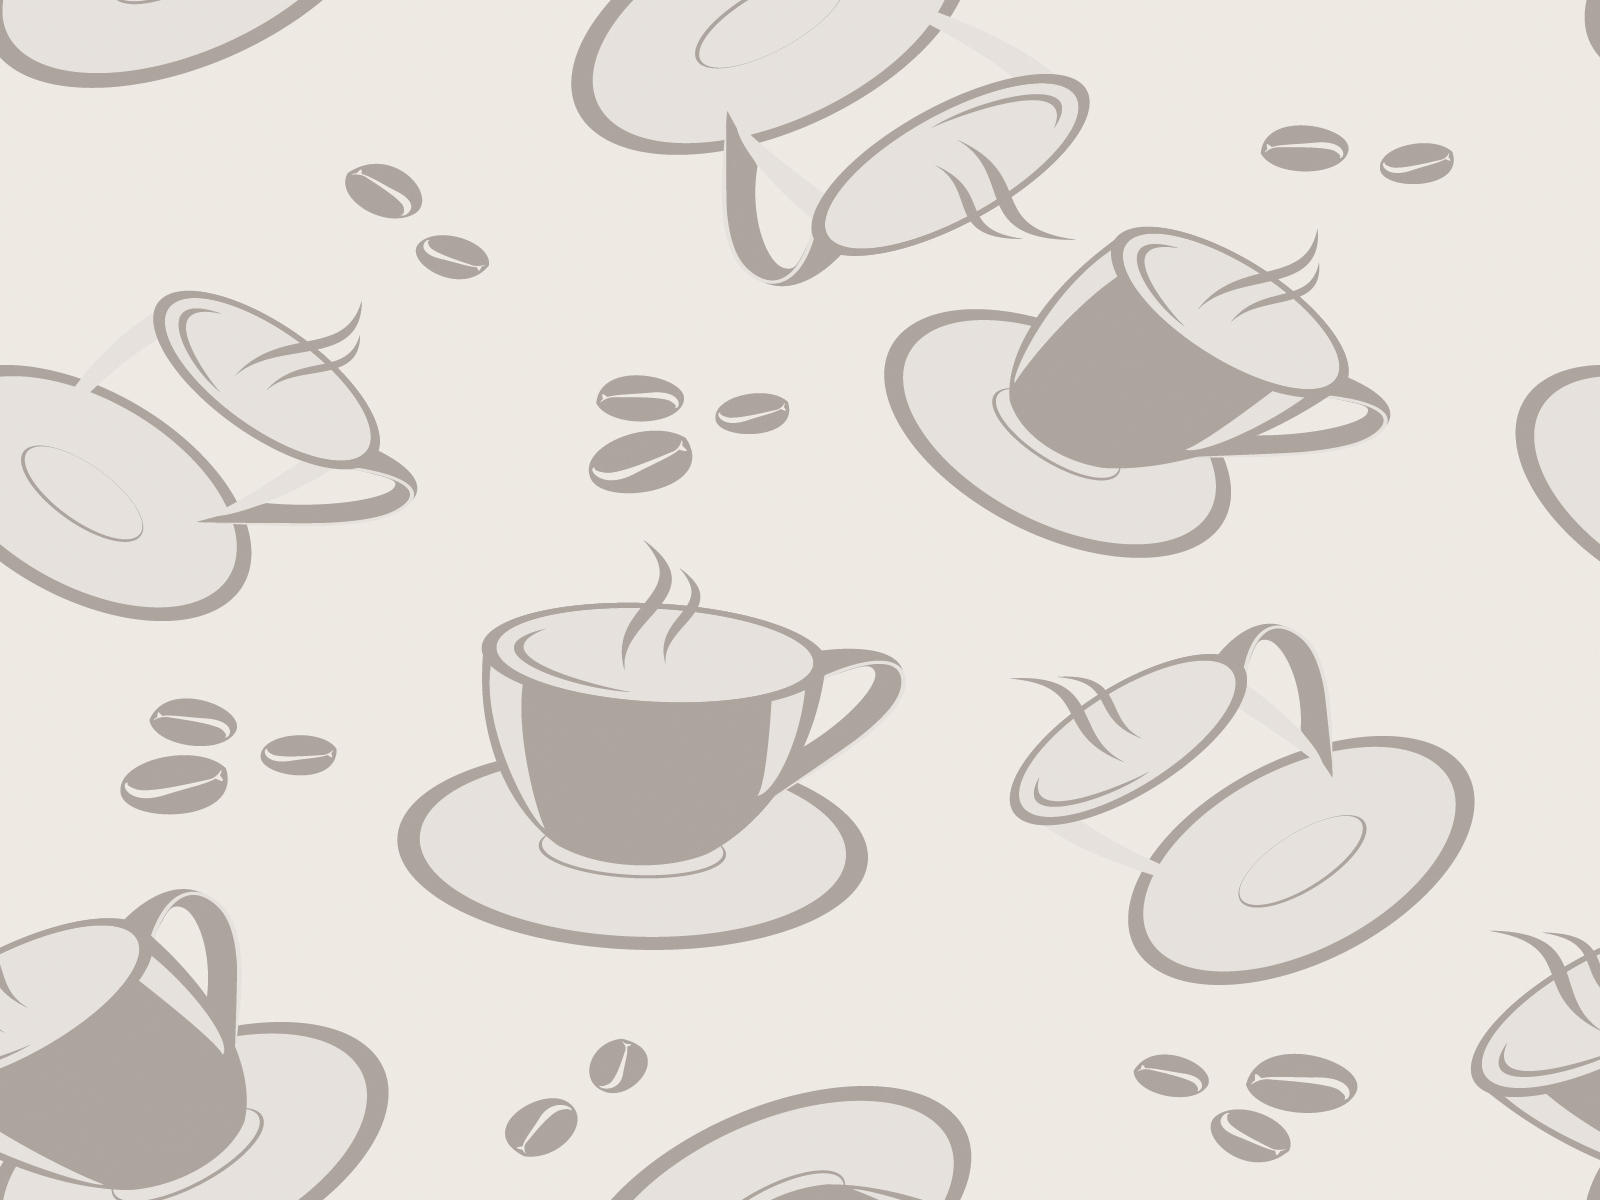 Coffee Team Design For Pattern Backgrounds Foods Drinks Pattern